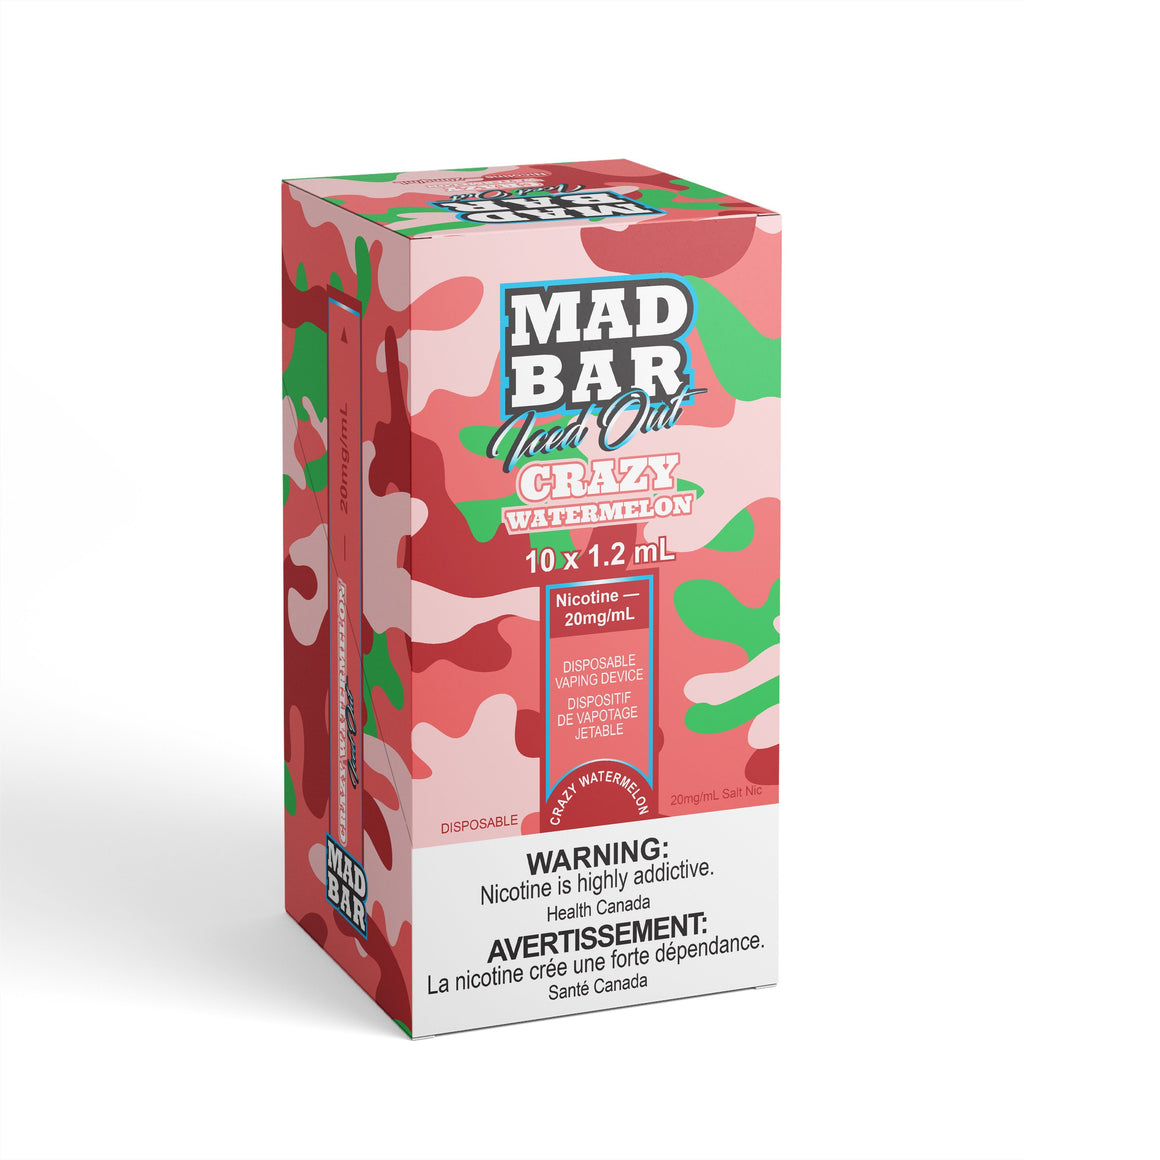 Mad Bar - Iced Out Crazy Watermelon